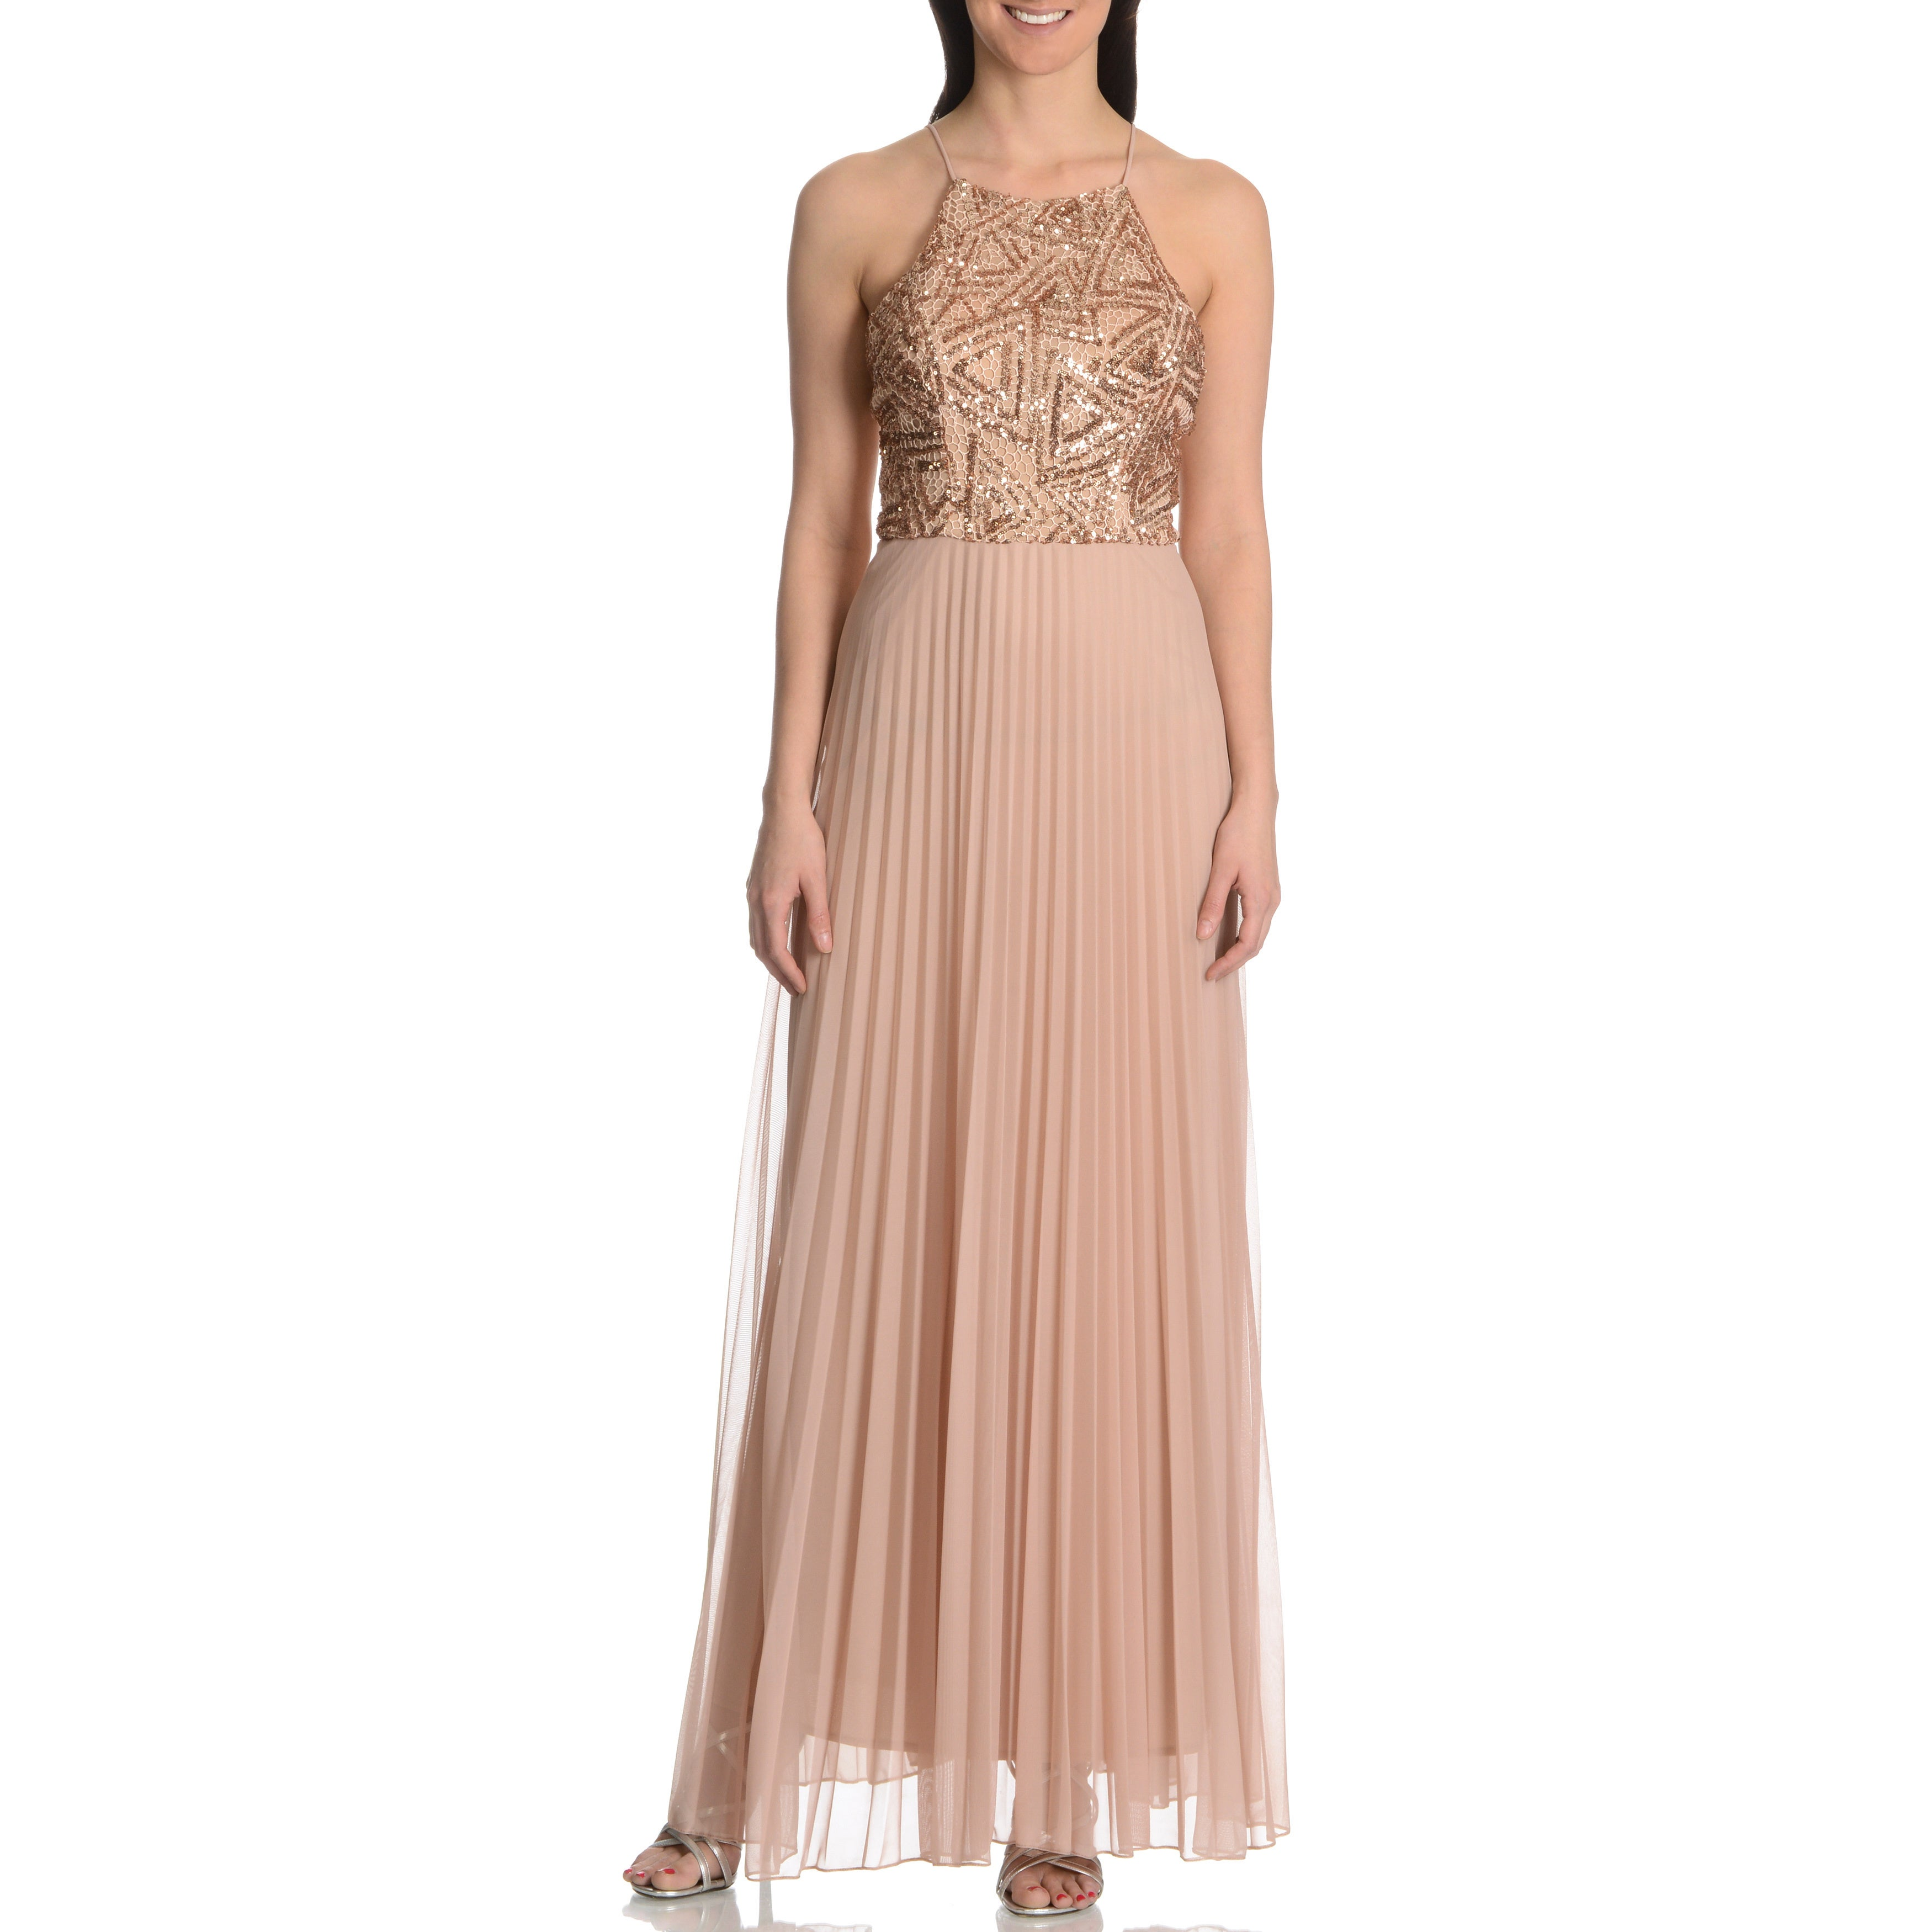 ba700f23 Shop Cachet Women's Spaghetti Strap Crochet & Sequin Top Gown w/Scarf -  Free Shipping Today - Overstock - 10175465